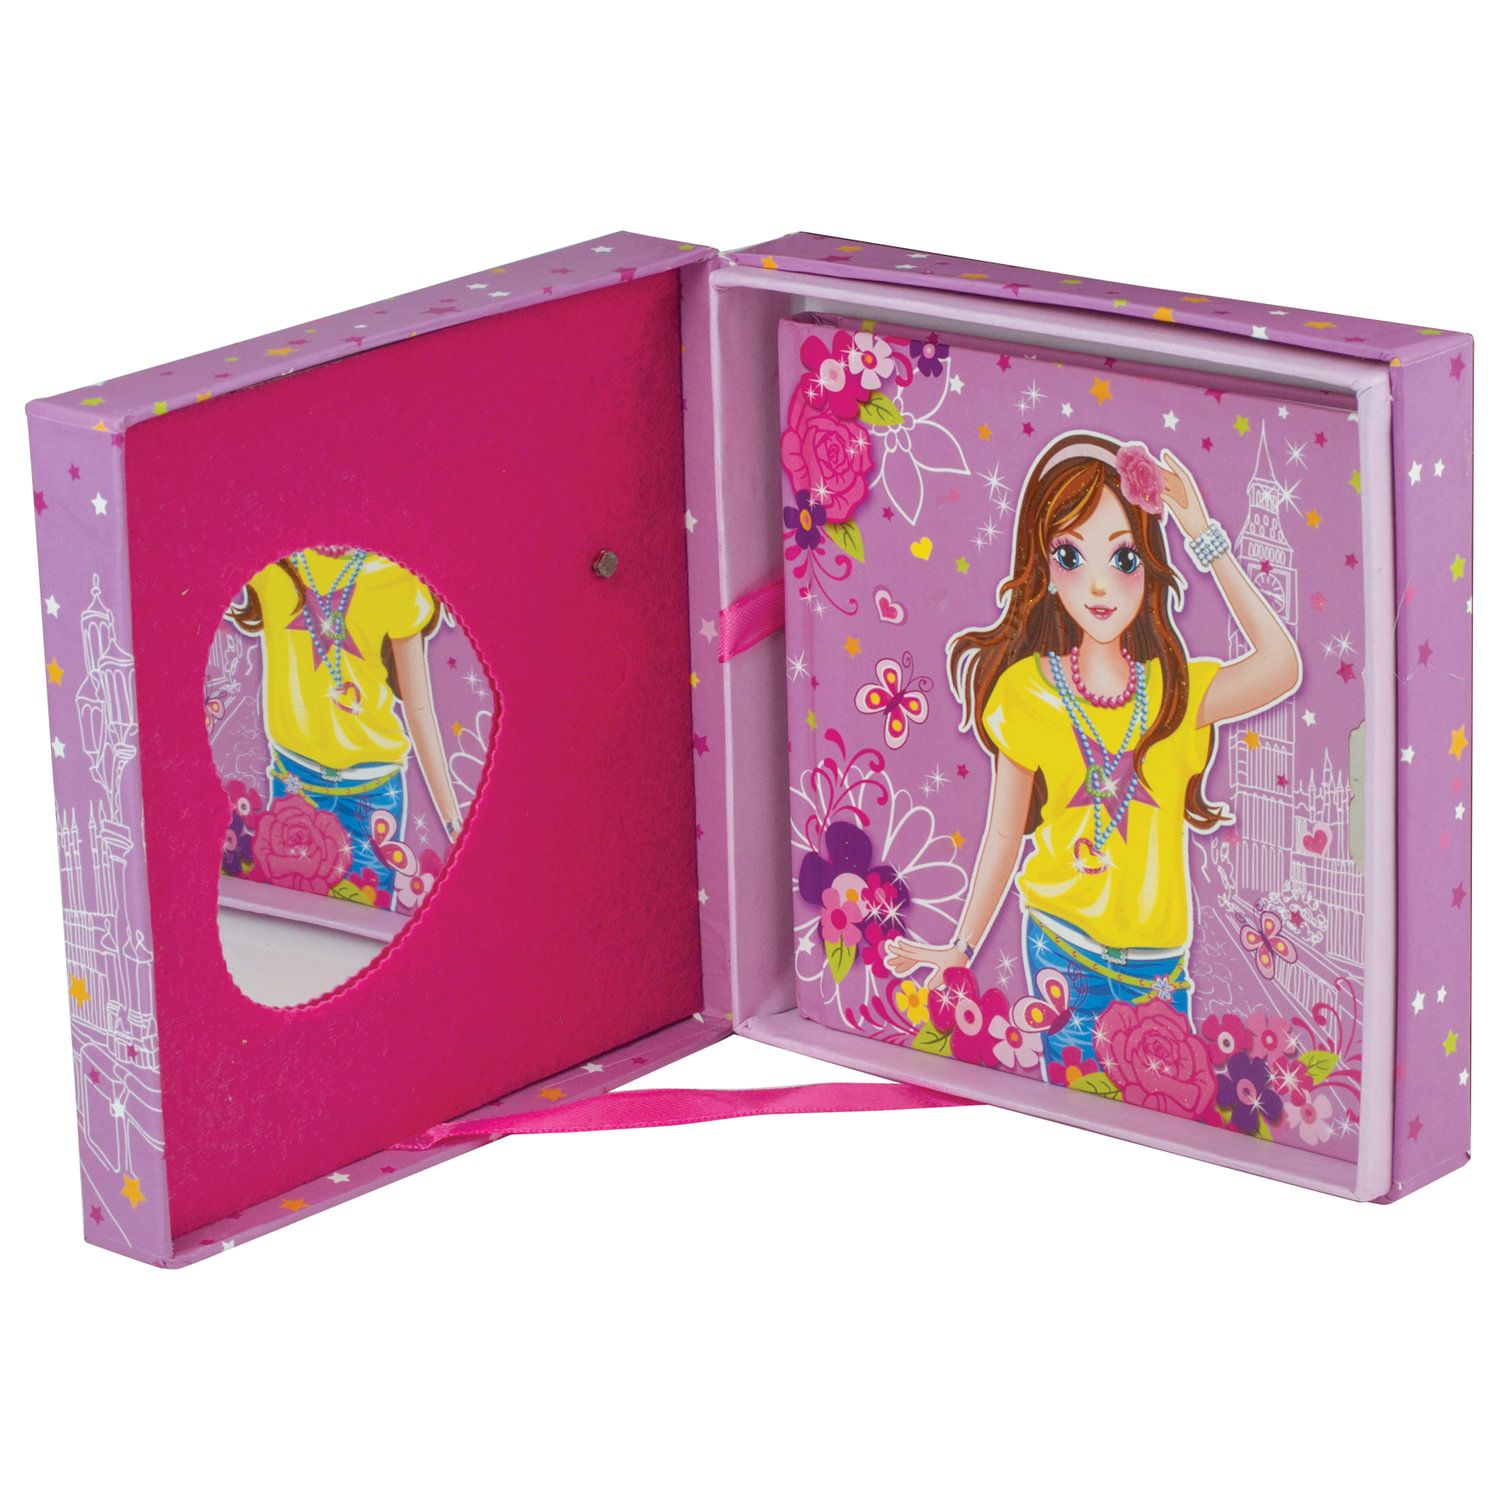 """BRAUBERG / Notebook """"Fashionista"""" SMALL FORMAT (130x130 mm) A6, 56 sheets, hardcover, metal. lock, gift wrap, music + mirror, line"""